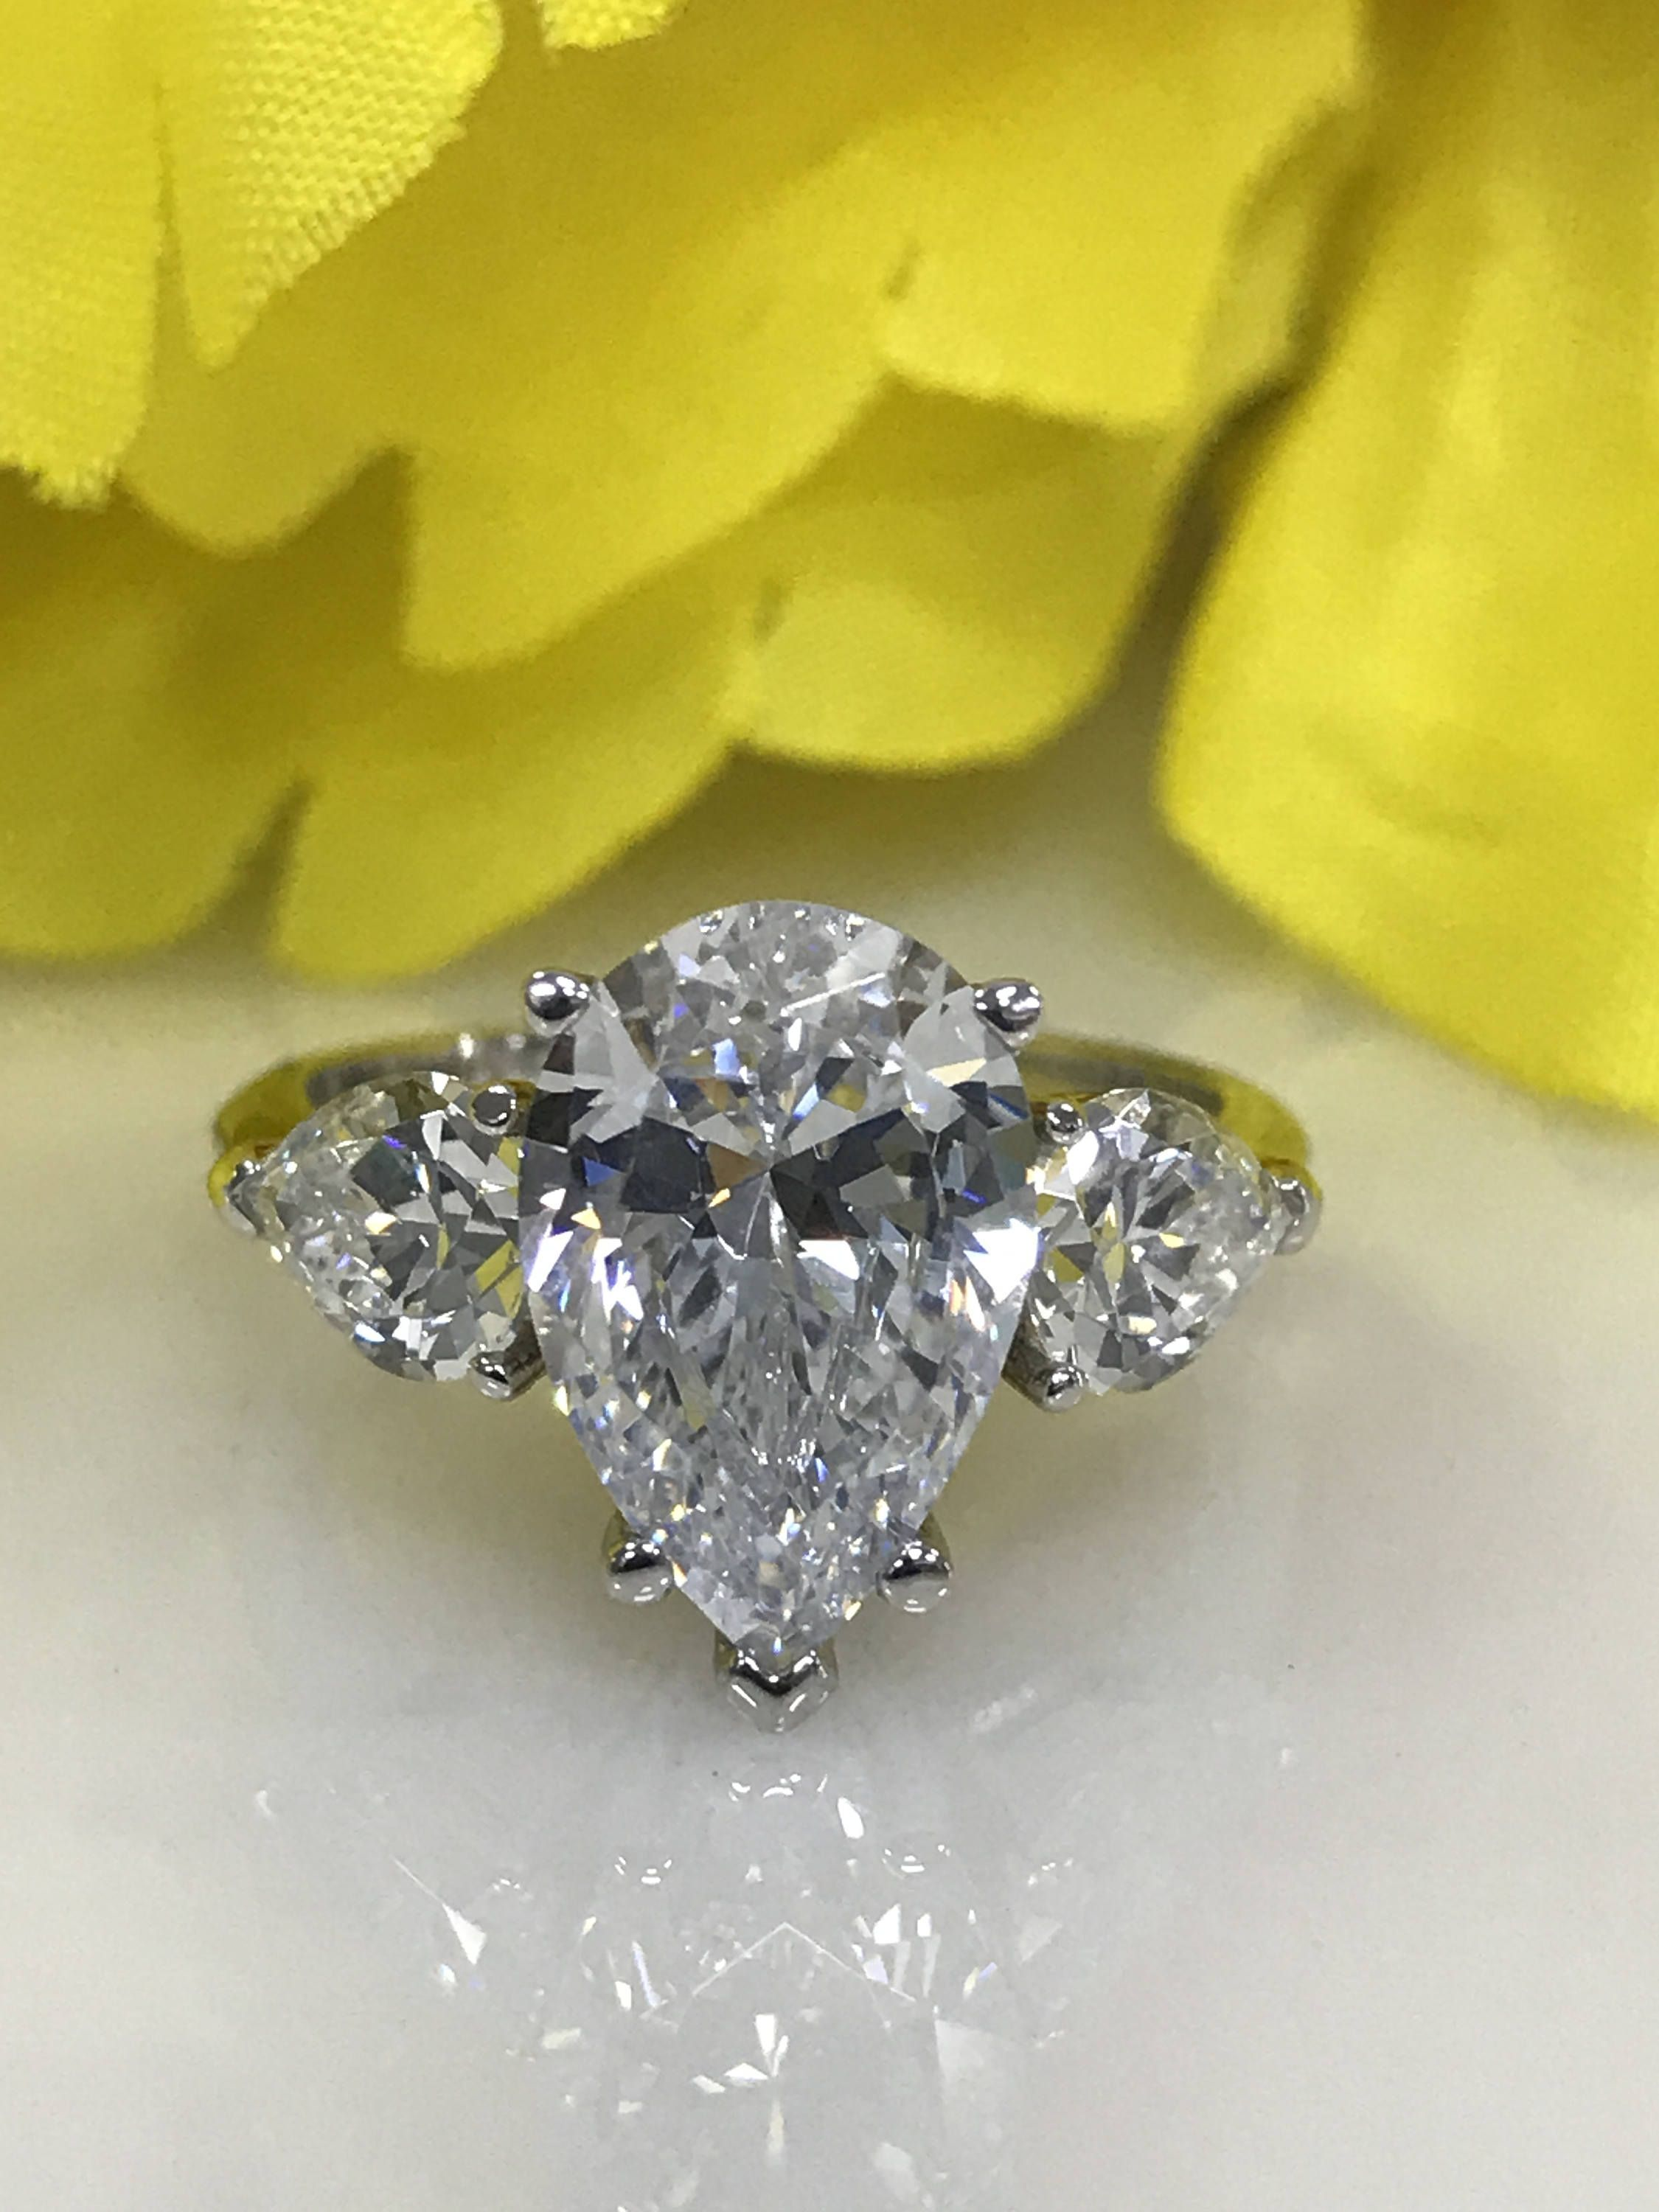 61940a7139b8c Engagement ring with Pear Shape Russian Cut diamond and Pear Accents ...